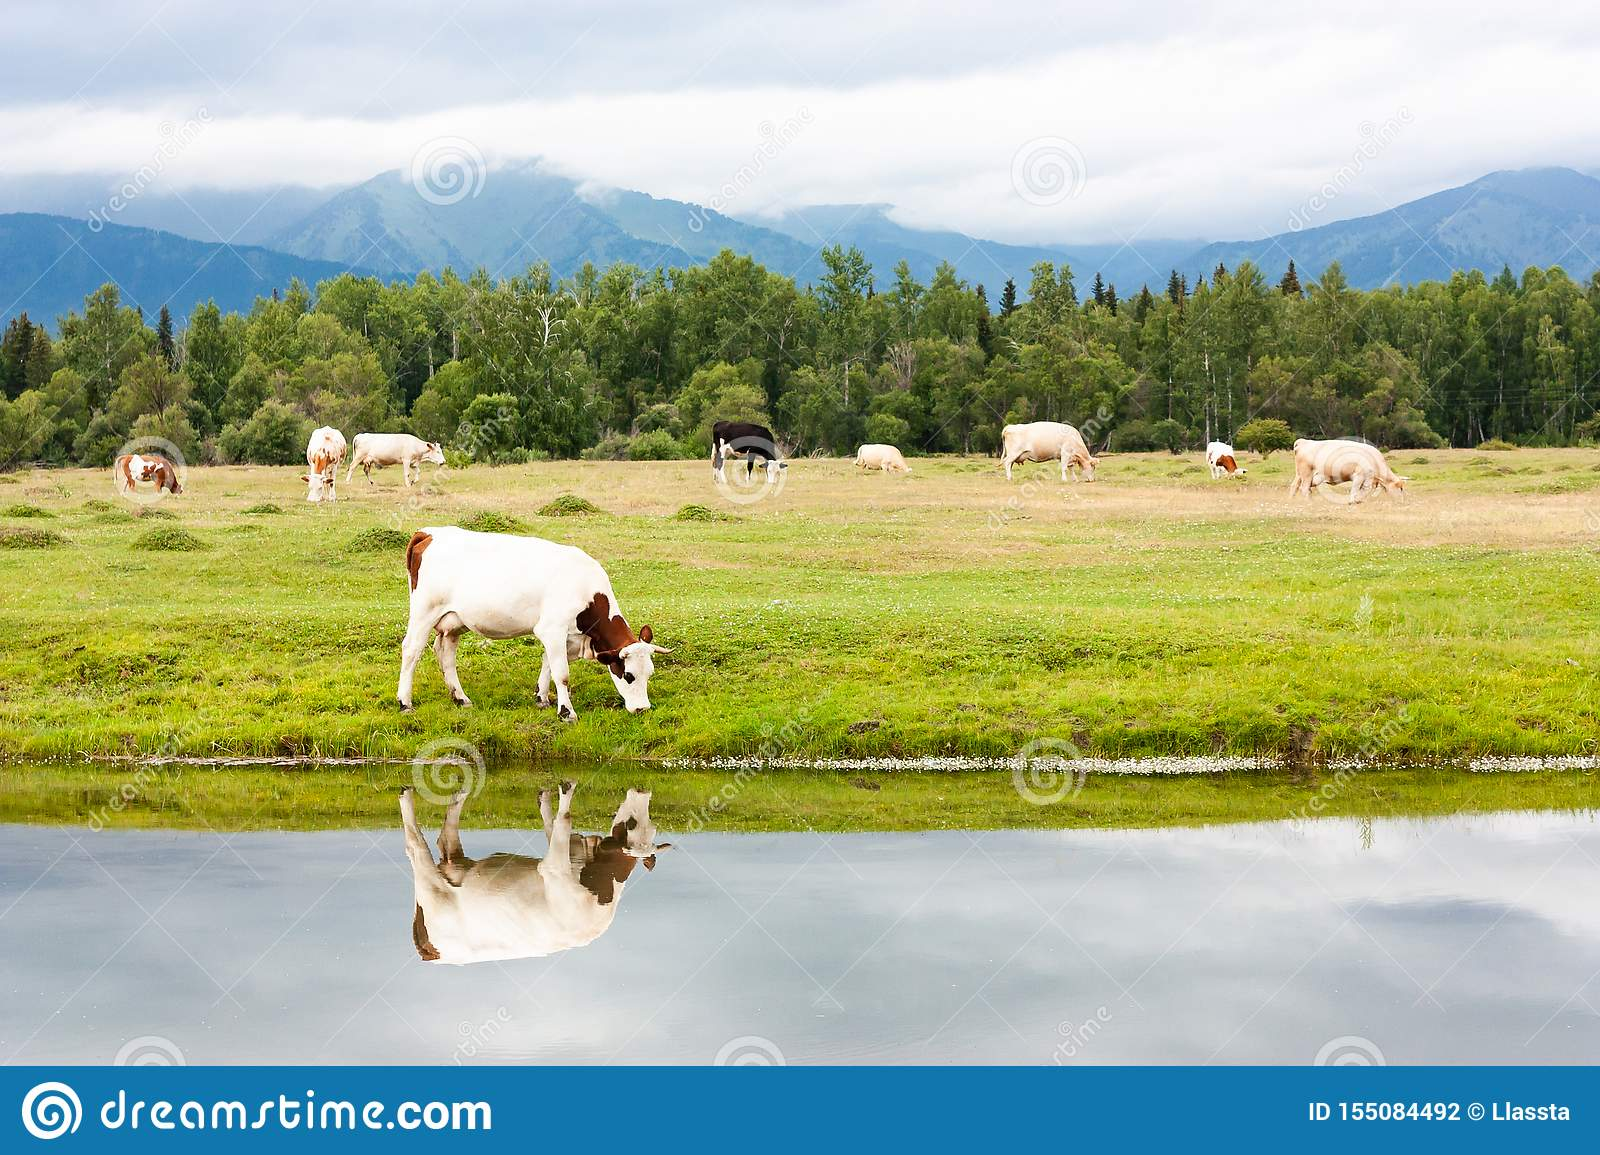 A small herd of cows grazes by the river in a meadow. Eat fresh green grass. A cow is reflected in the water